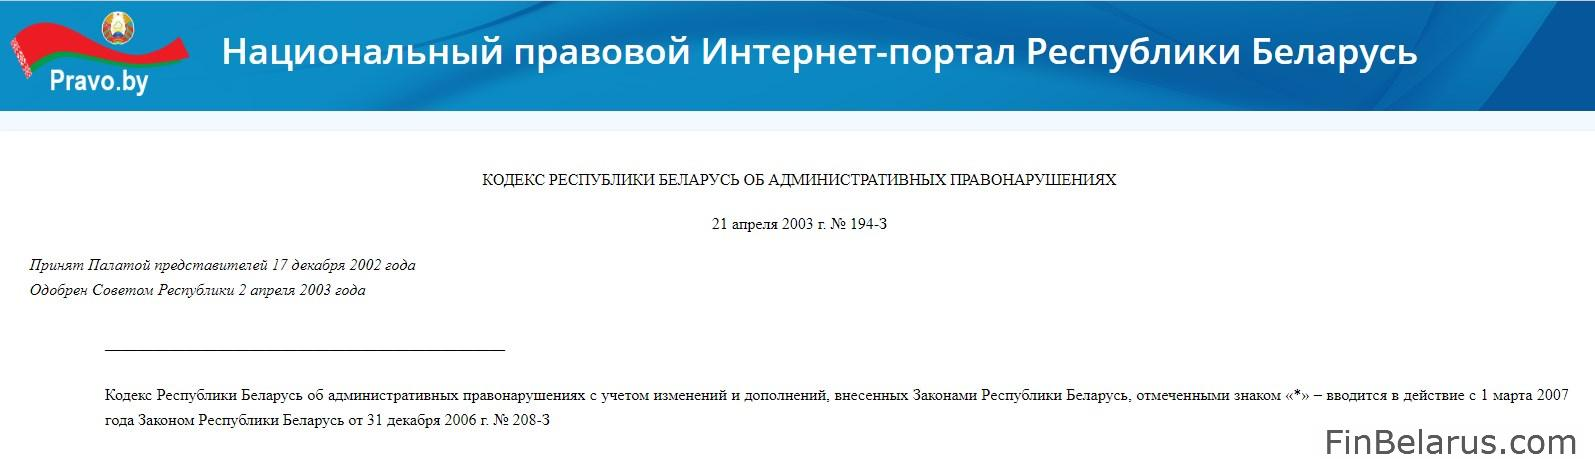 Штрафы гаи рф